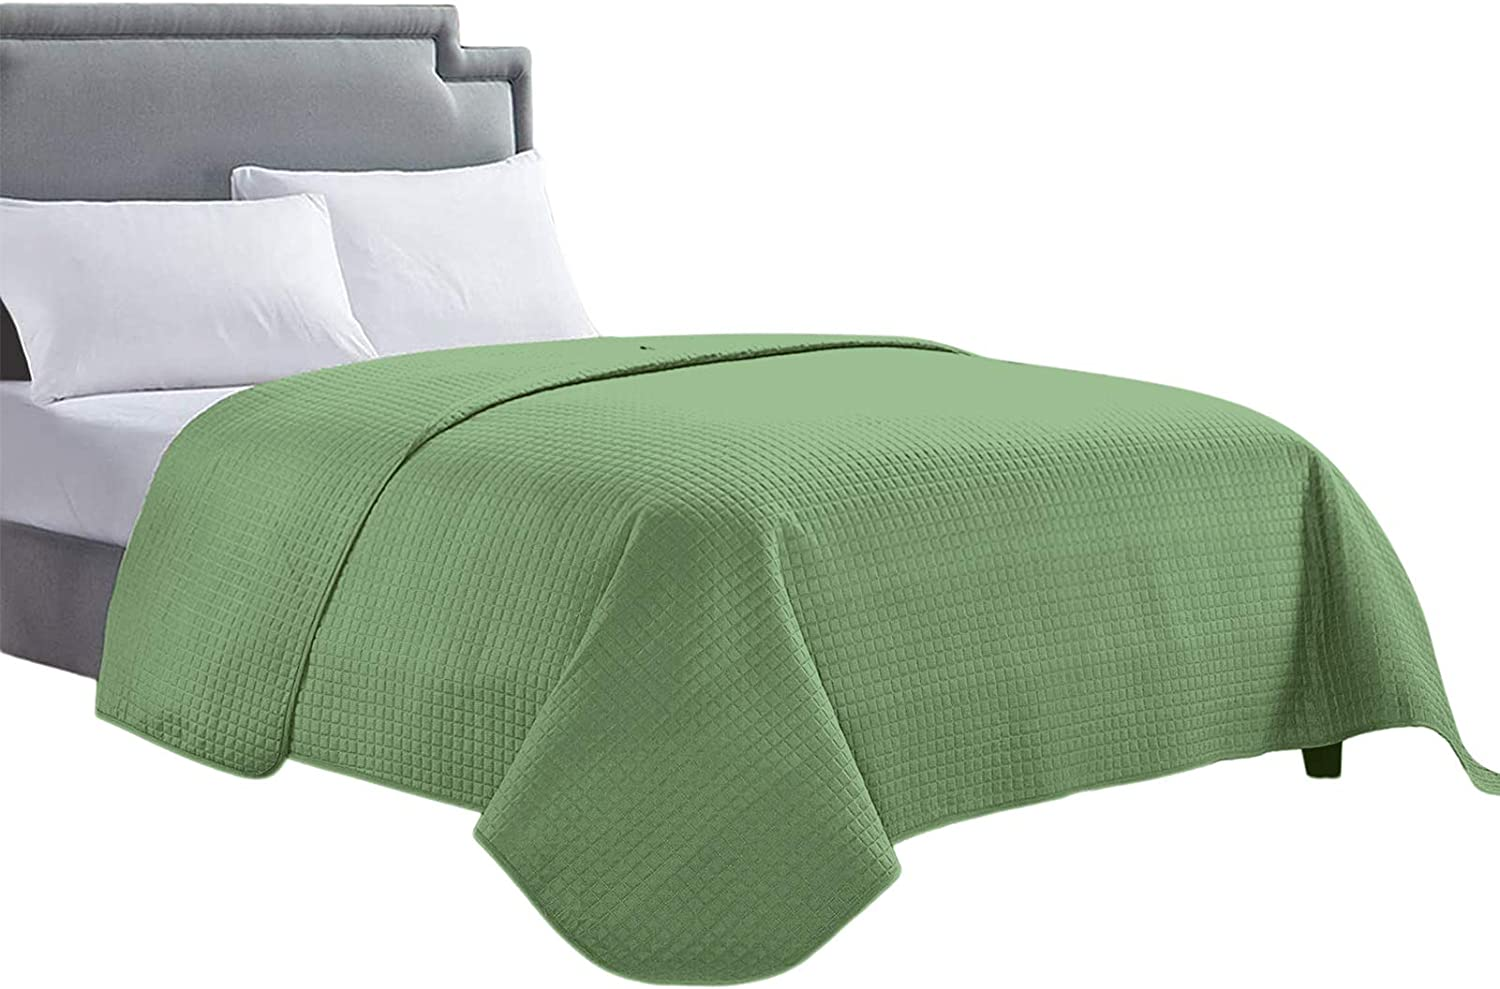 HollyHOME Luxury Checkered Super Soft Solid Single Pinsonic Bed Quilt Bedspread Bed Cover, Green, Full/Queen